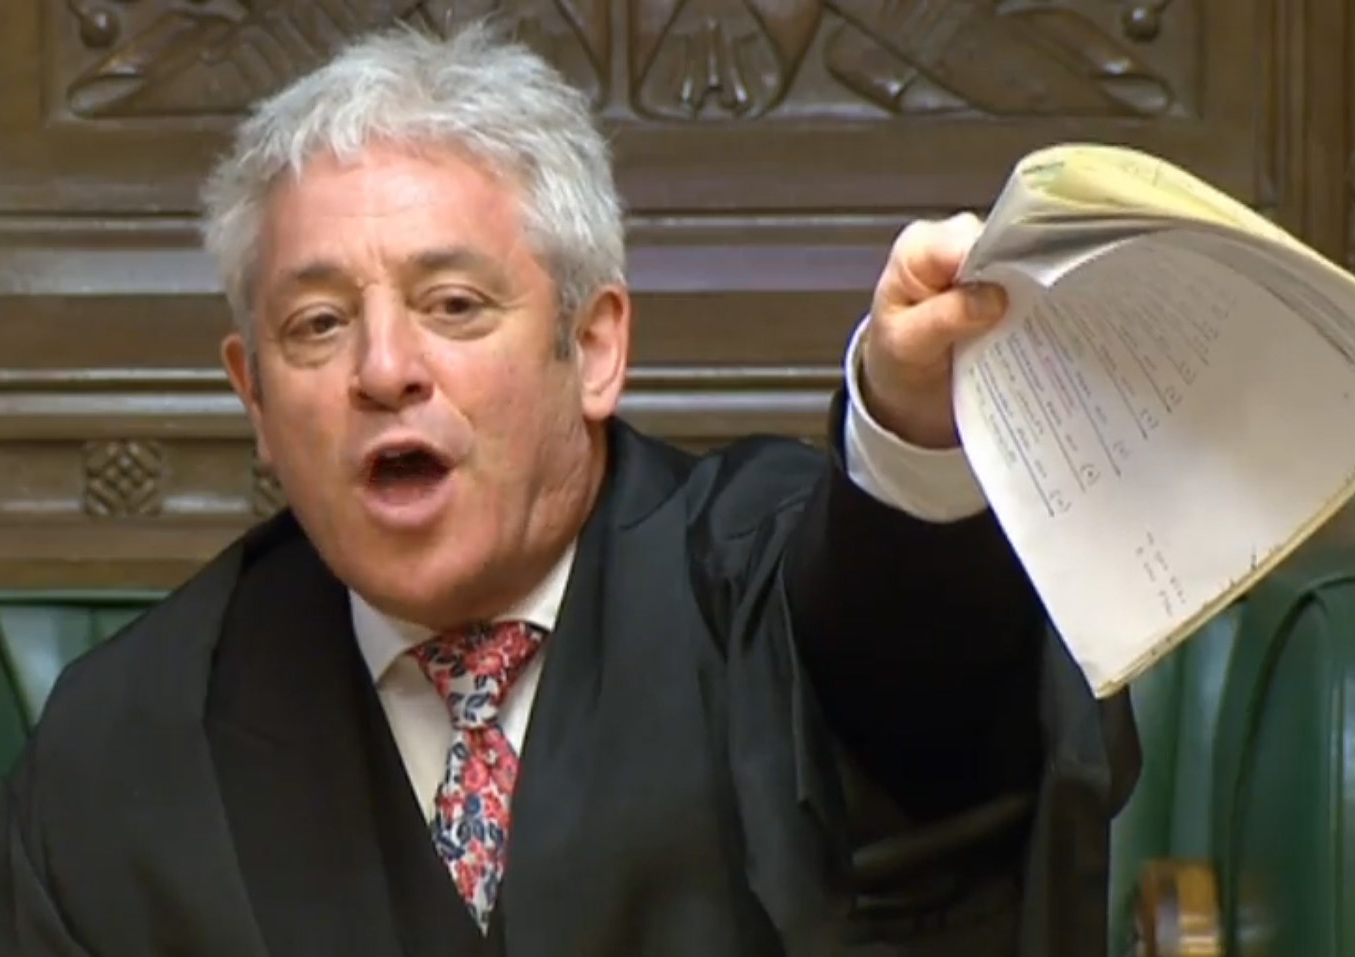 Speaker John Bercow's treatment of the SNP yesterday was inexcusable